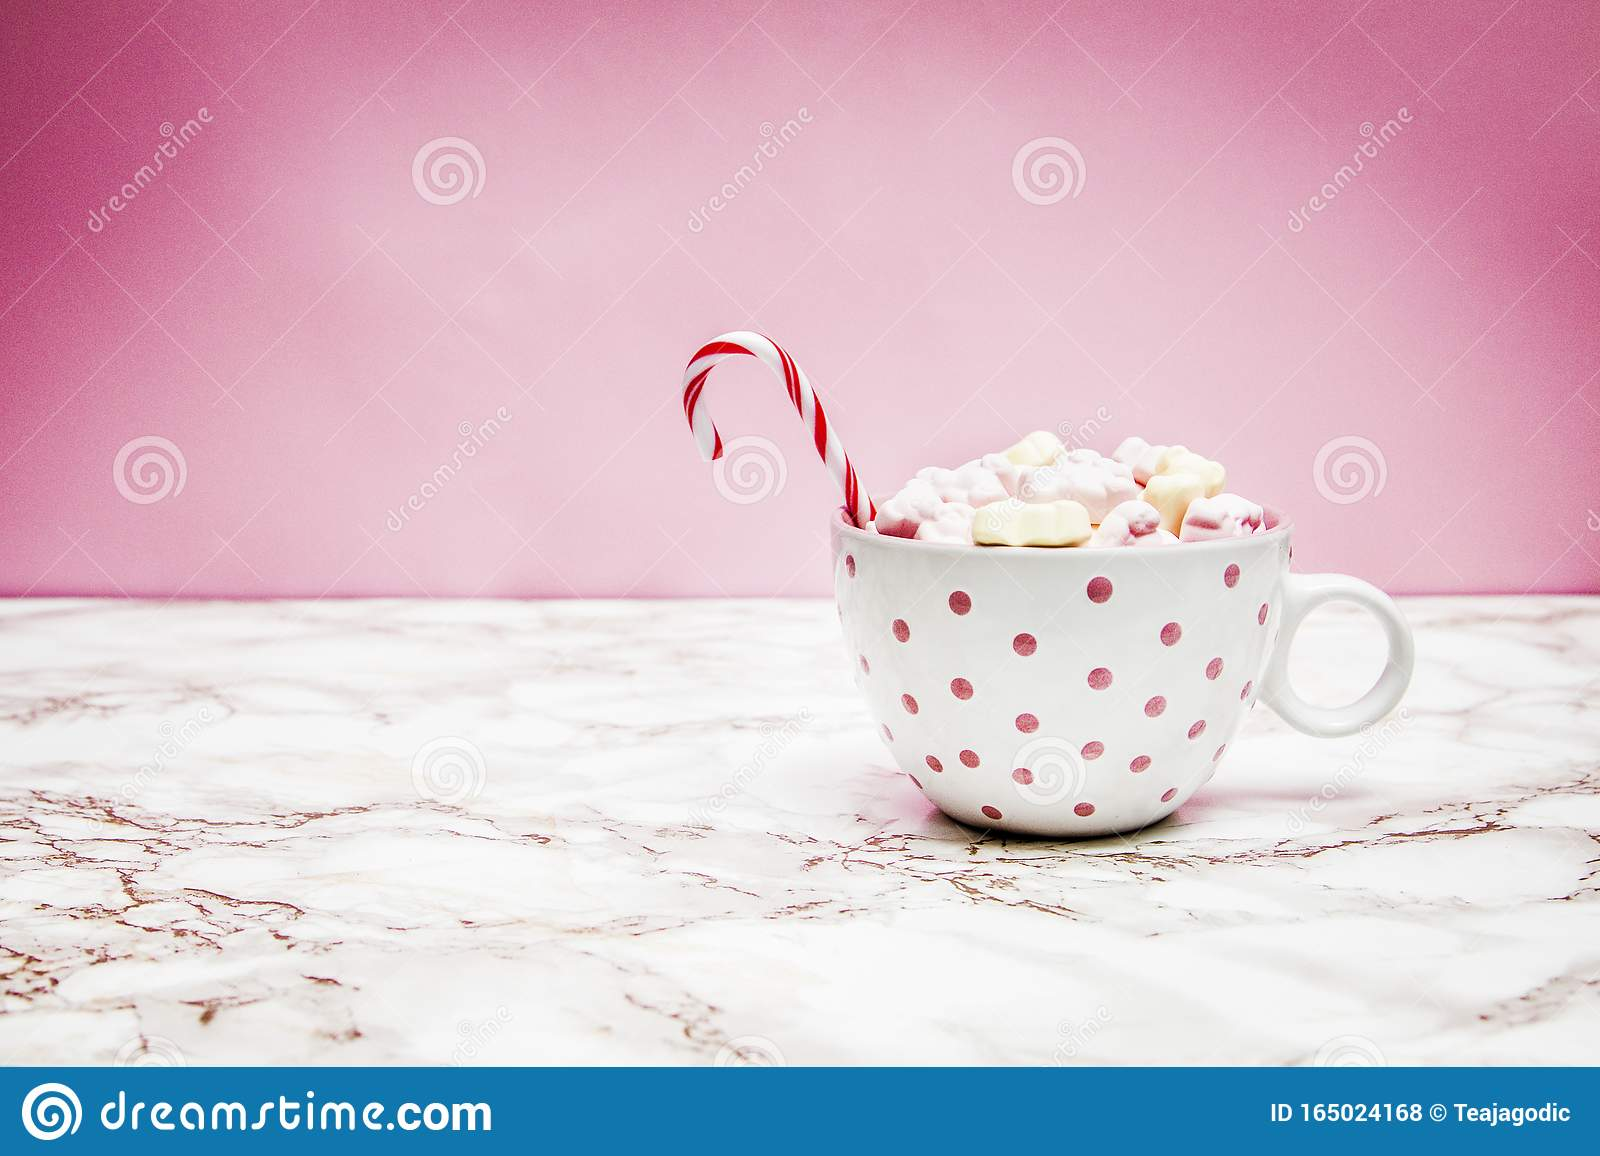 White Pink Christmas Mug With Marshmallows Sugar Cane On A Cozy Sweaters And Pink Background Editorial Stock Photo Image Of Interior Caffeine 165024168